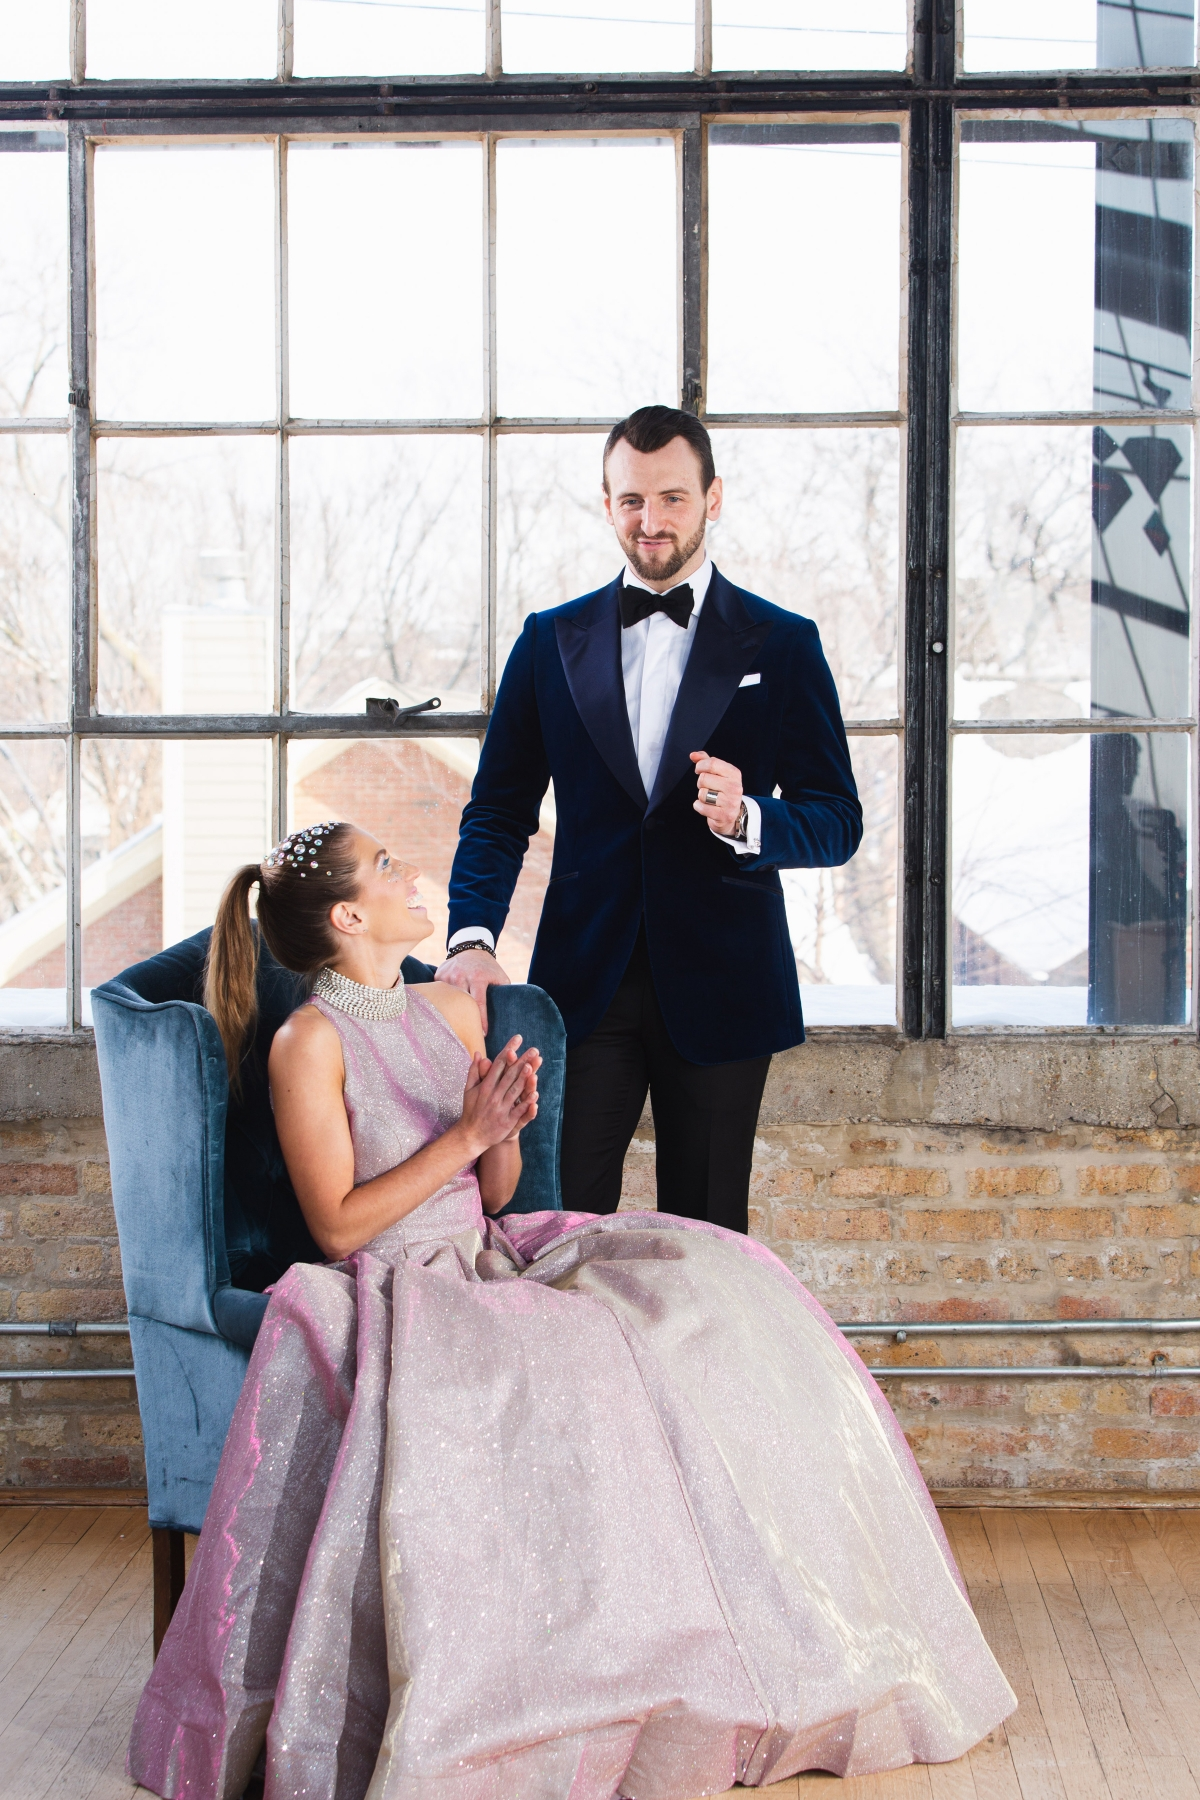 Colorful Iridescent Futuristic Chicago Wedding Inspiration 43